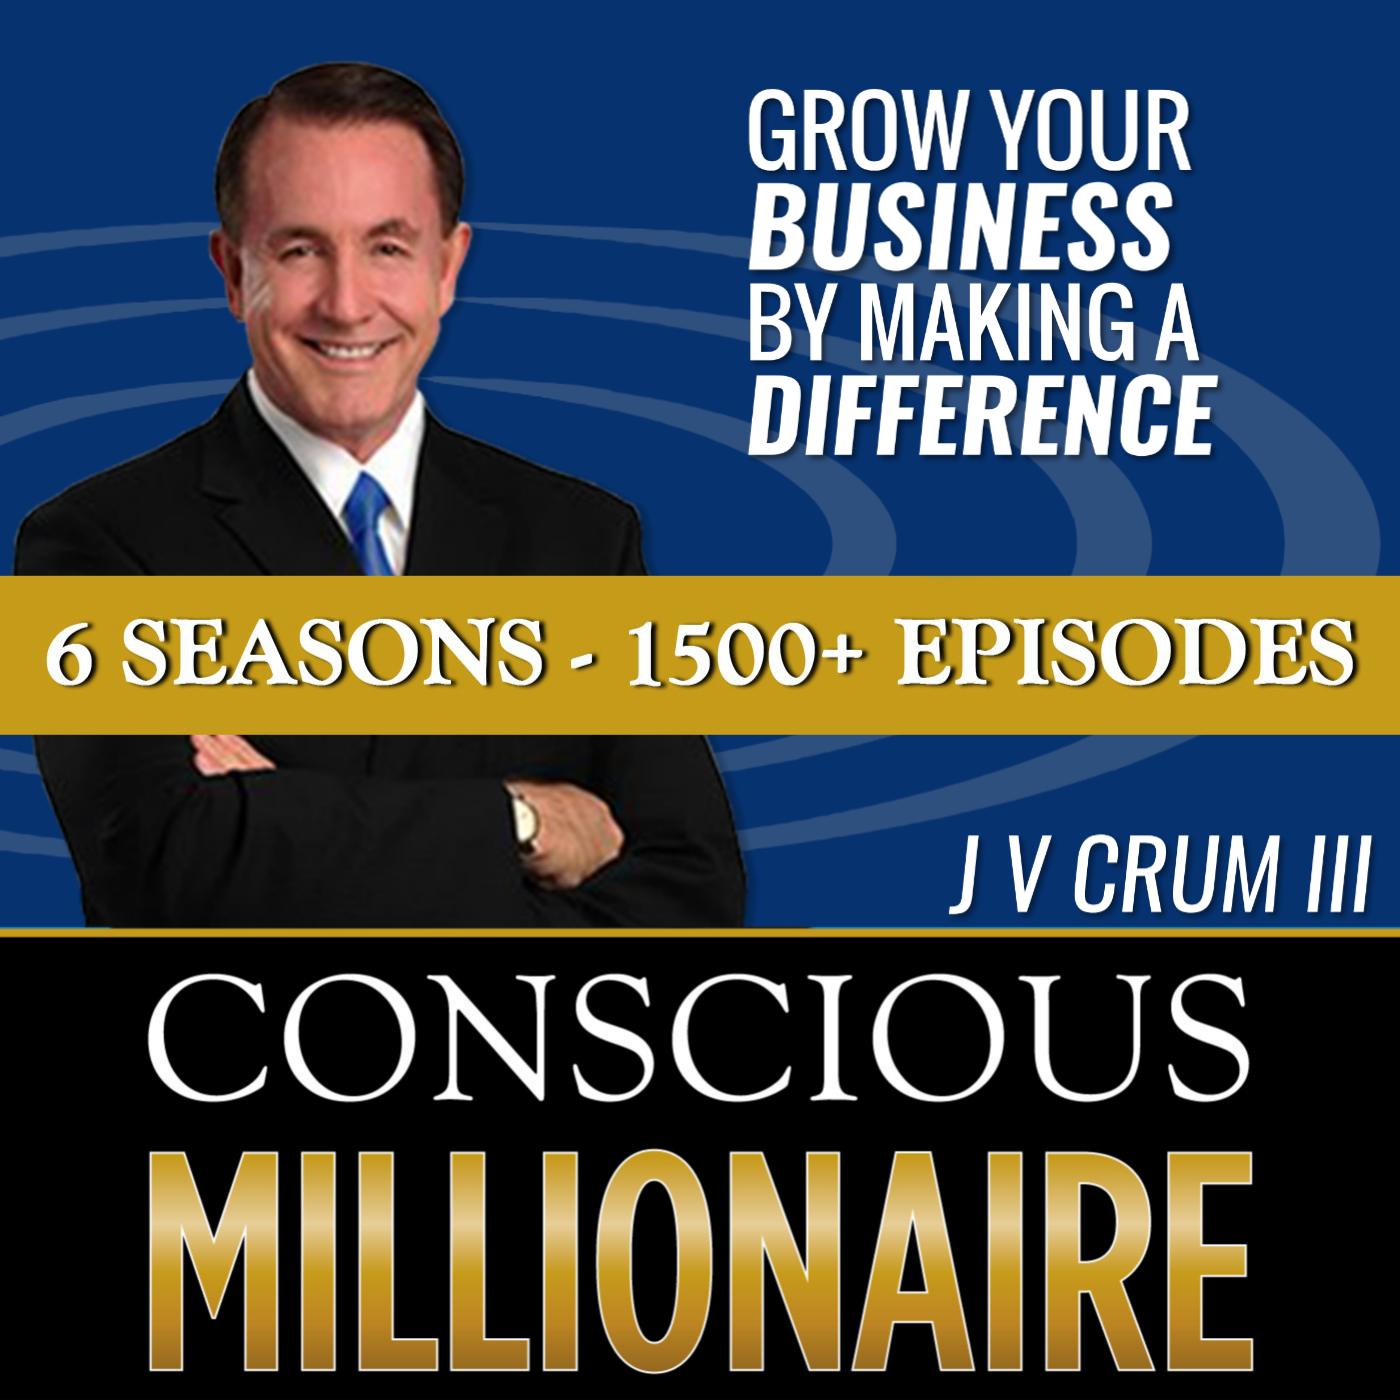 Conscious Millionaire Show ~ Business Coaching and Mentoring 6 Days a Week show art